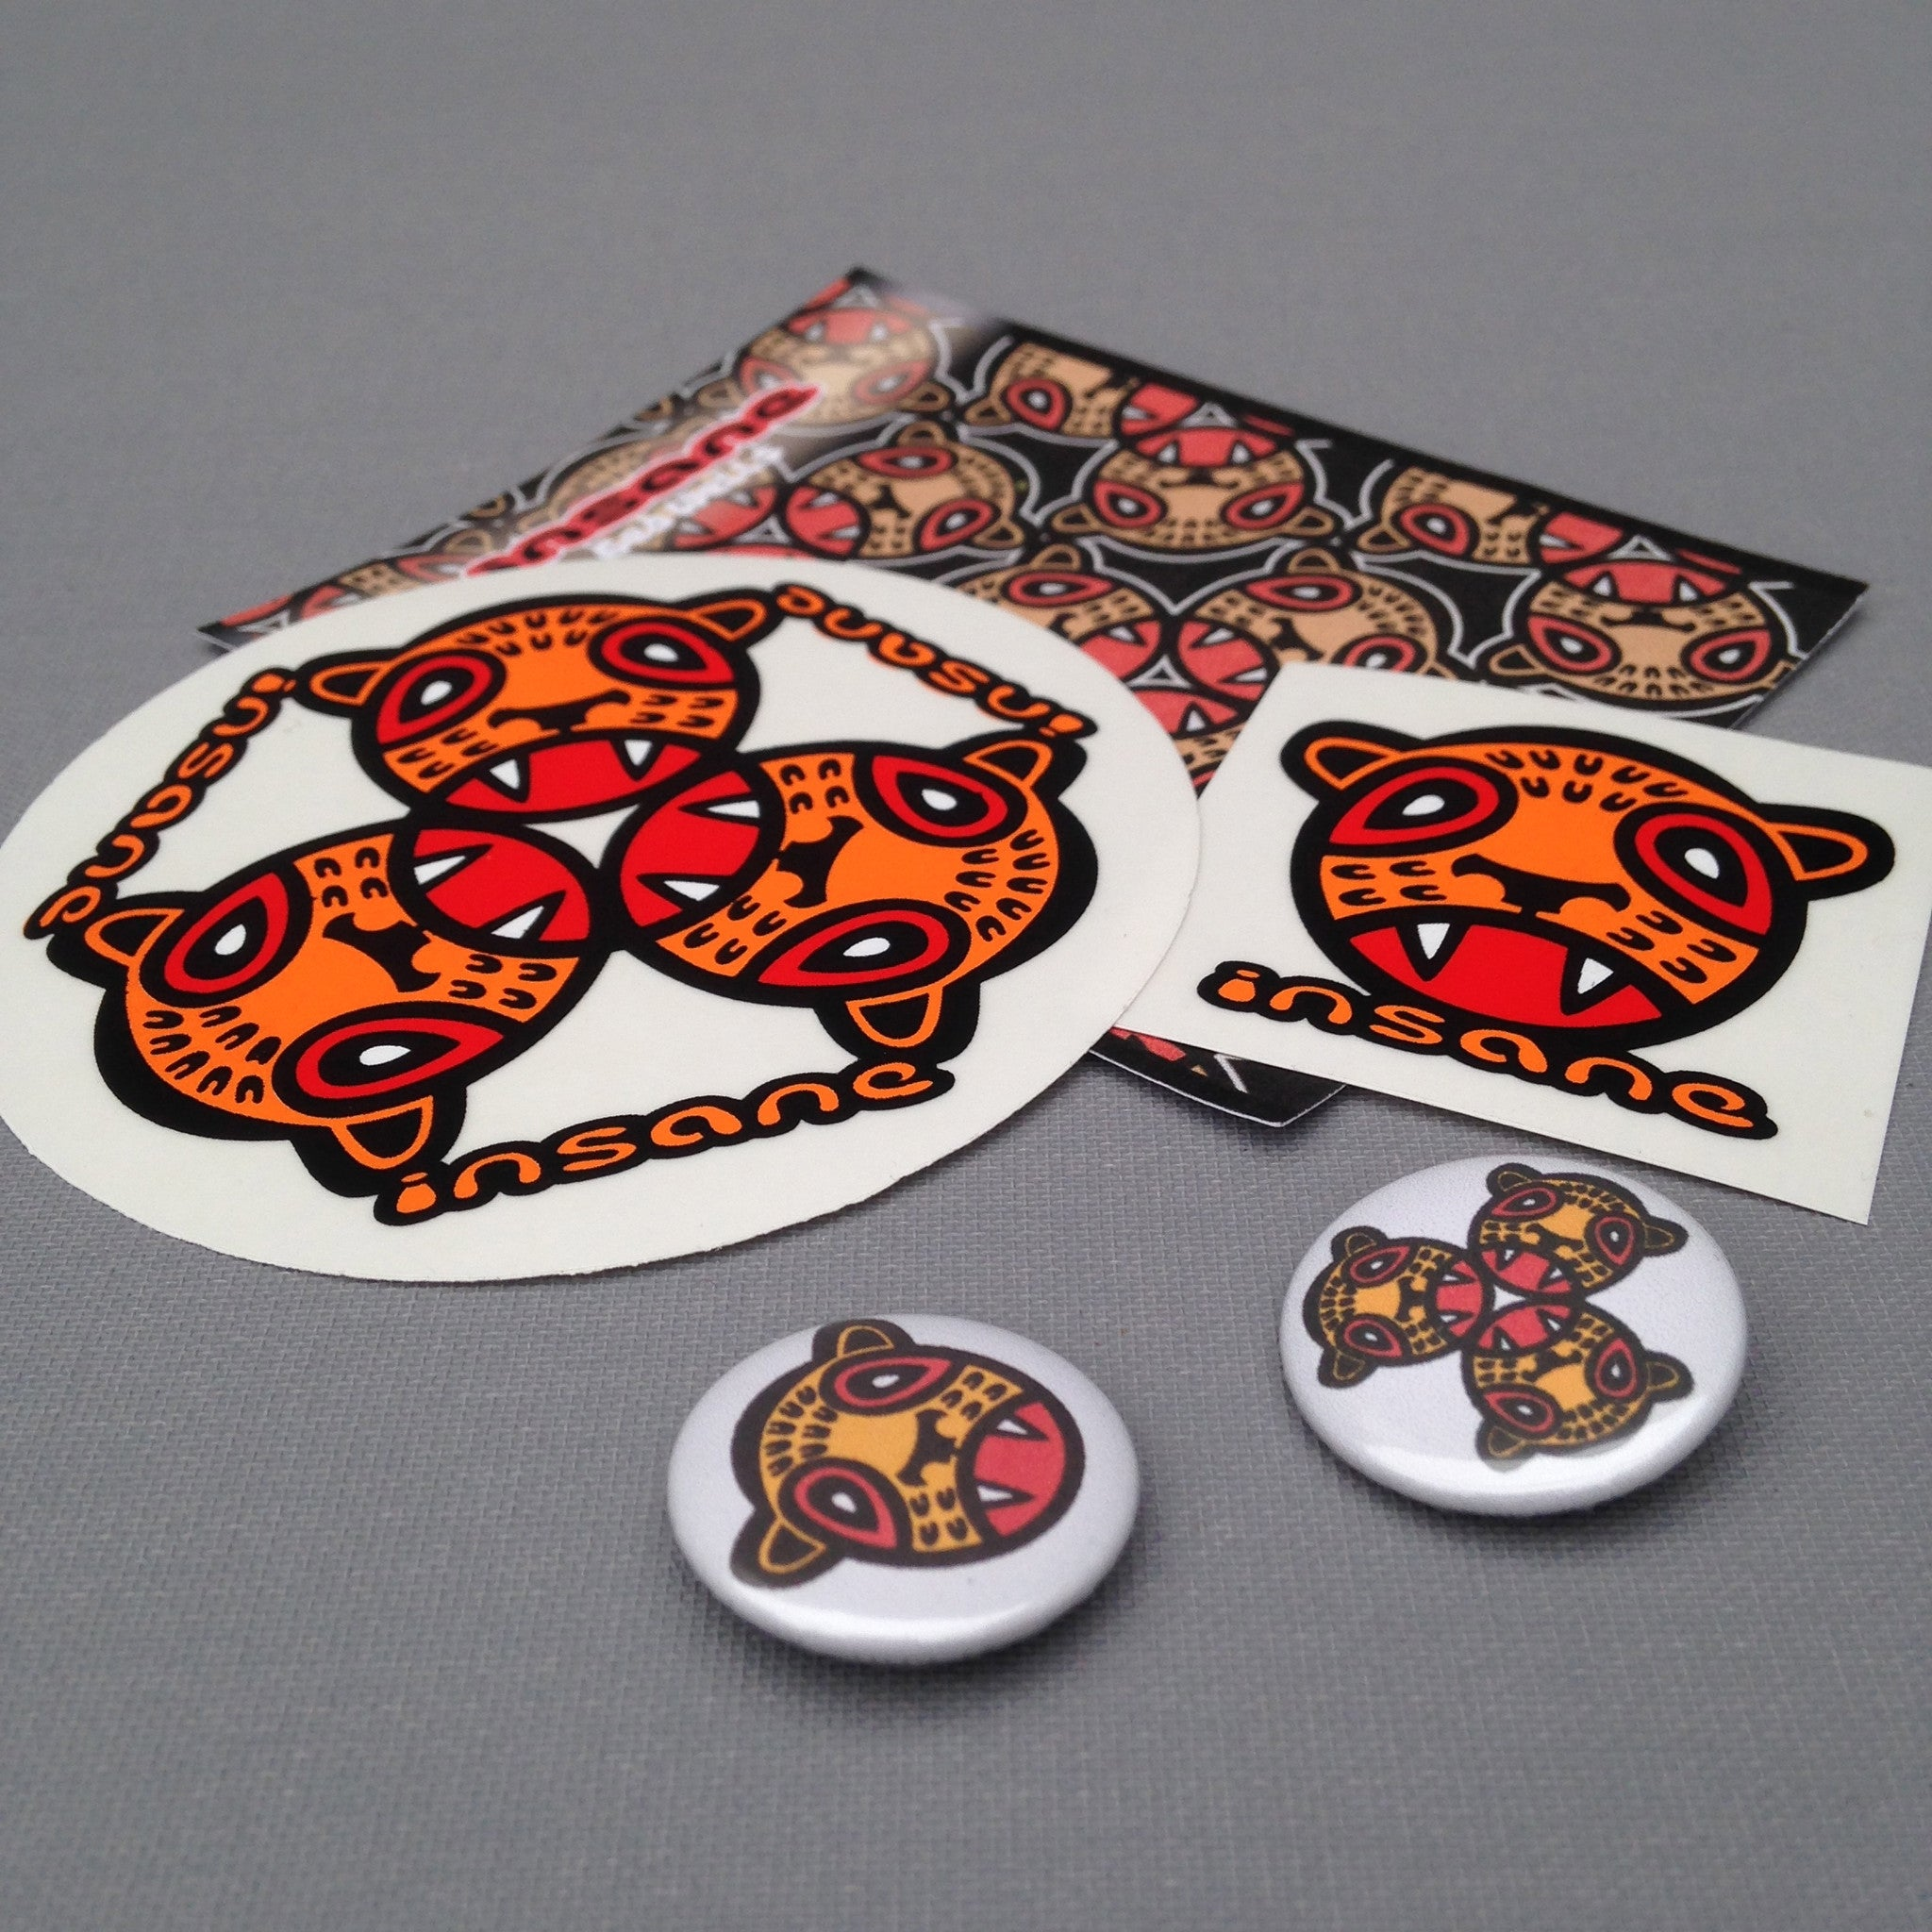 LEOPARD CUB Sticker and badge pack